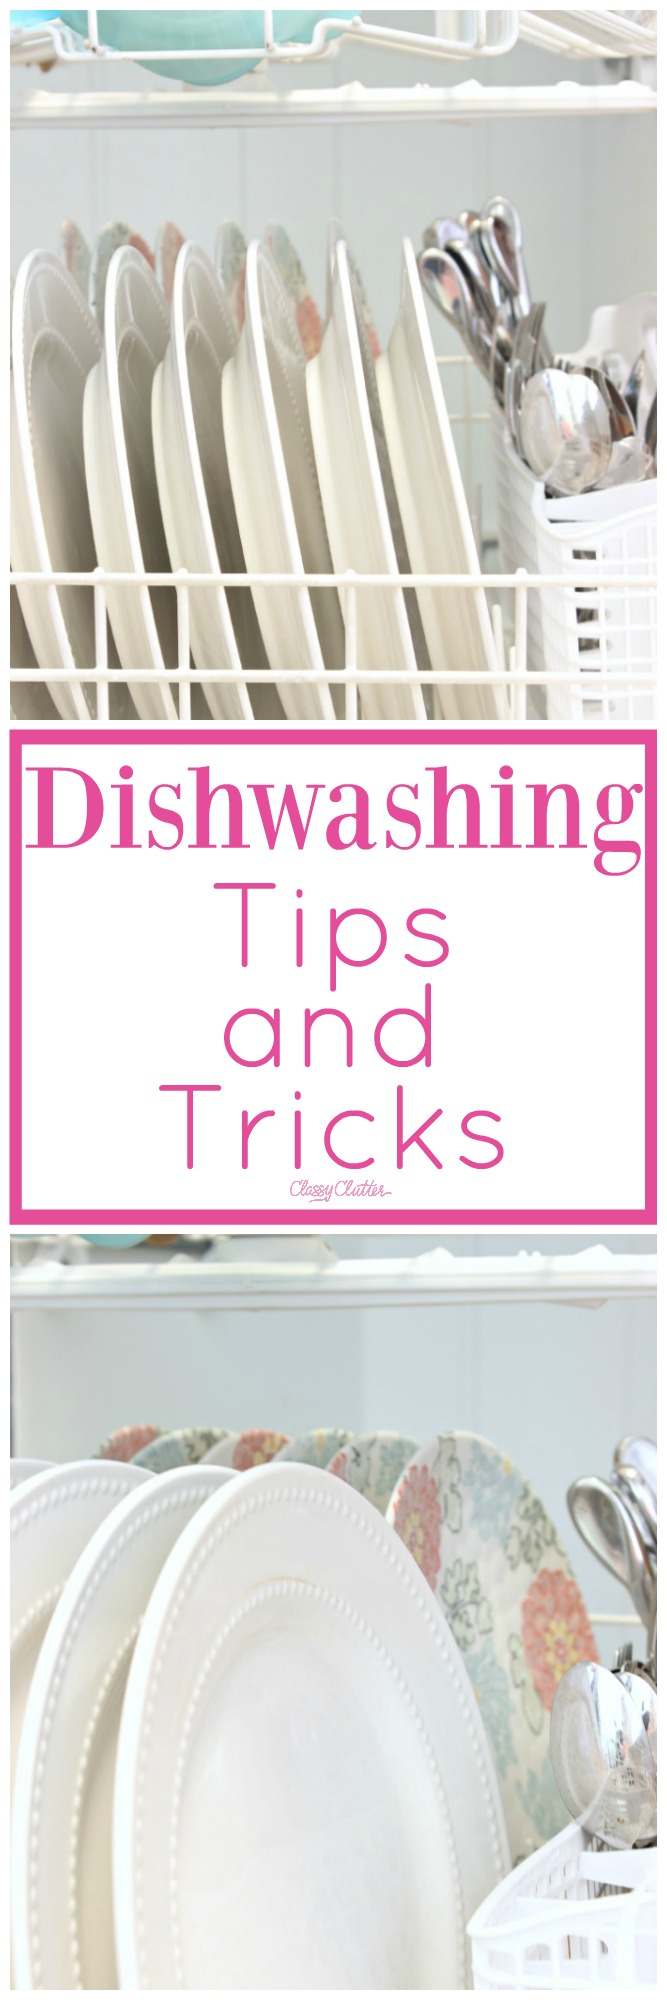 How to load a dishwasher and Dishwashing Tips and Tricks